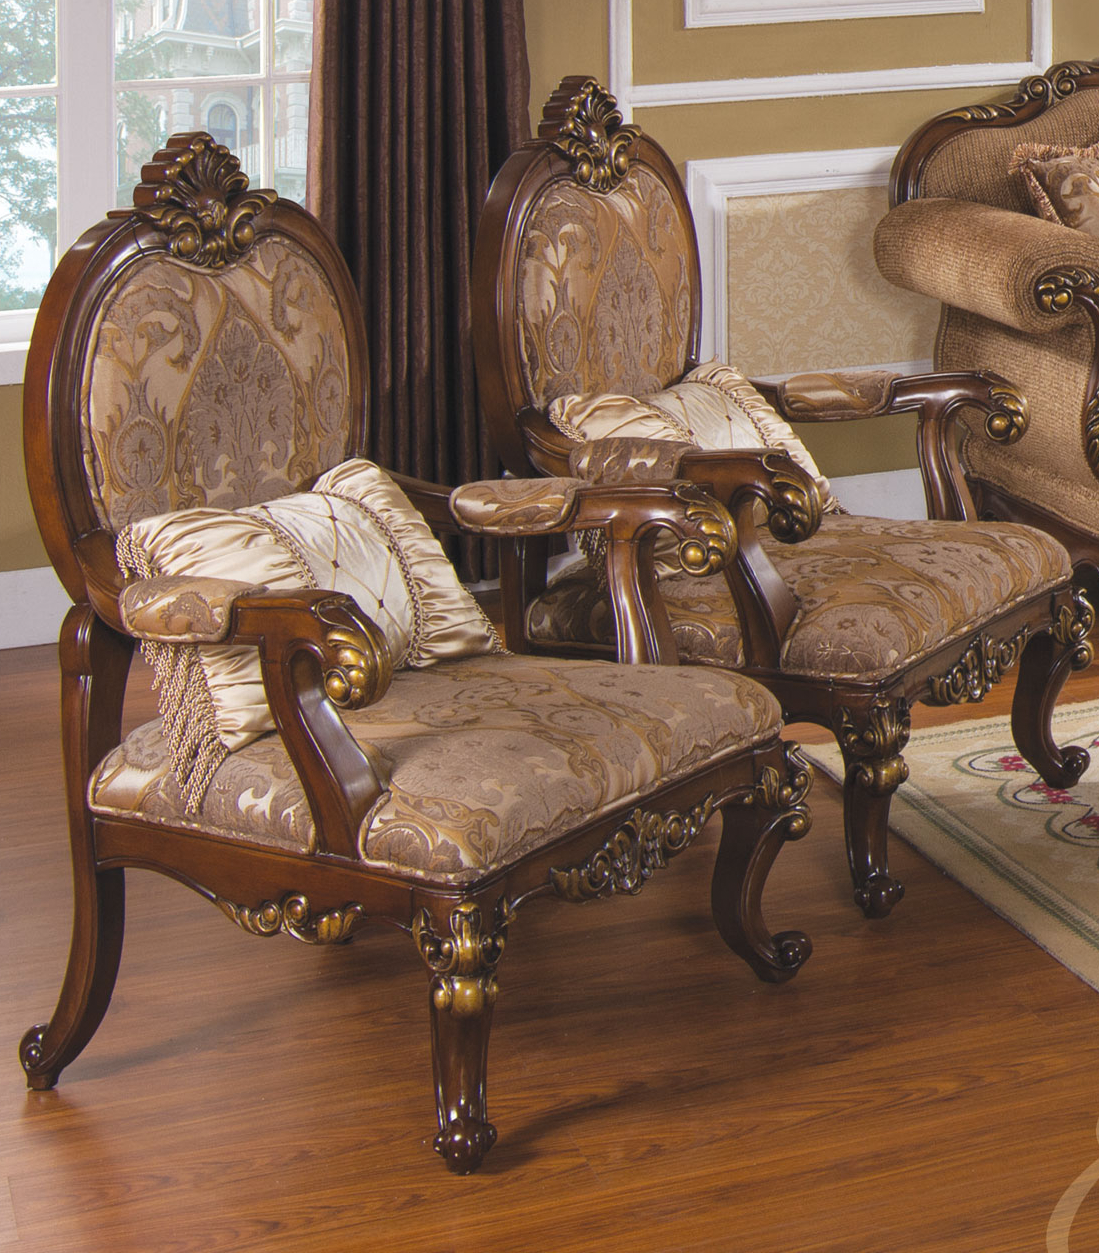 Antique Victorian Sofa Styles: Victorian Style Sofa Set